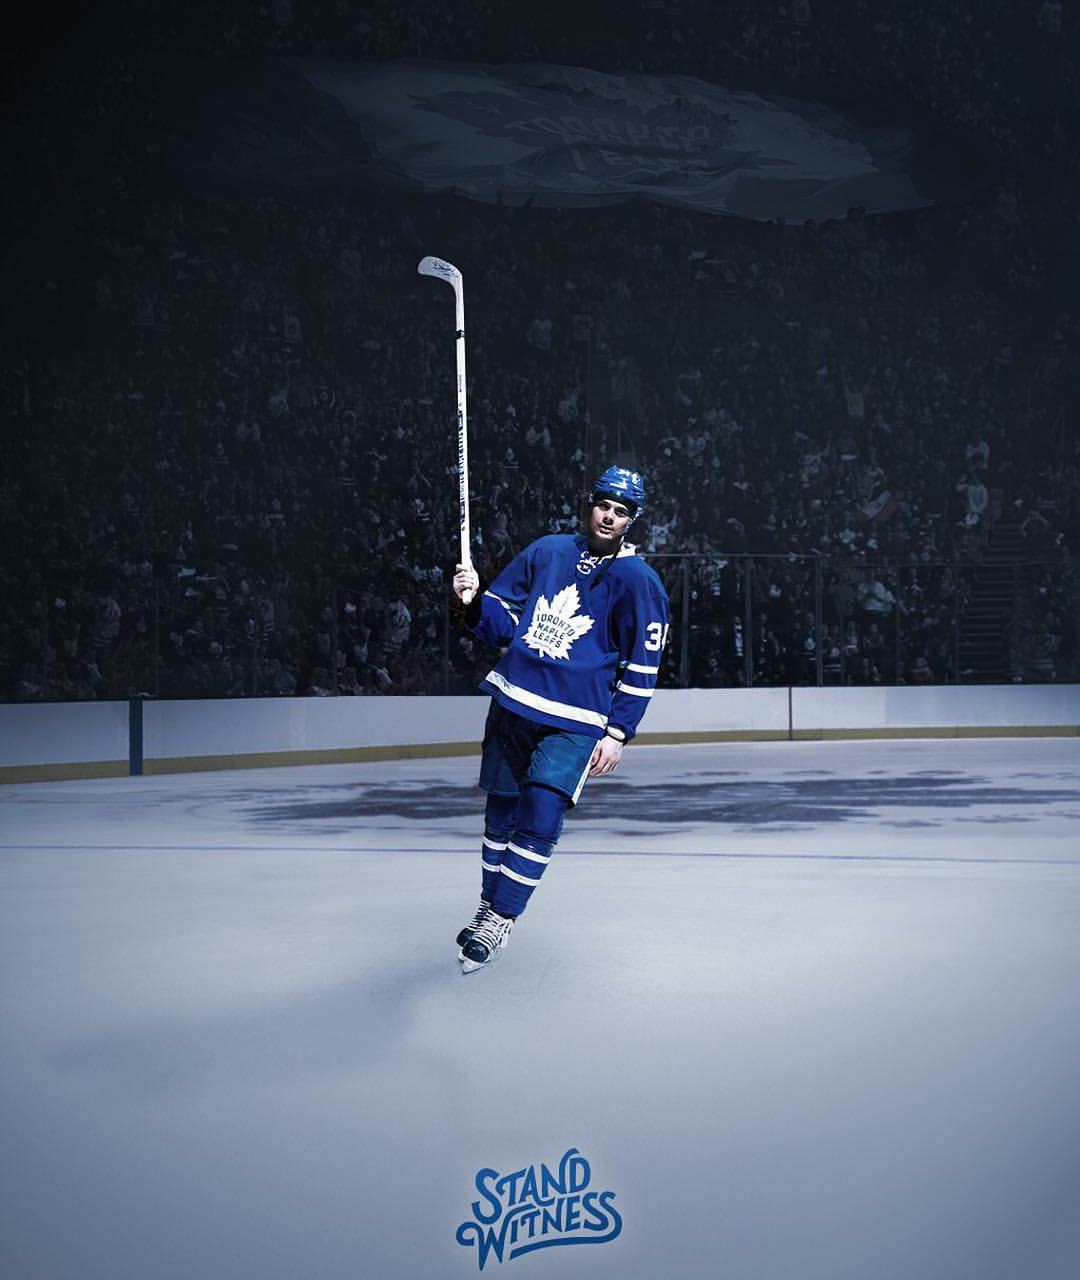 Auston Matthews 38 Goals Are The Most Ever For A Leafs Rookie Toronto Maple Leafs Toronto Maple Leafs Wallpaper Maple Leafs